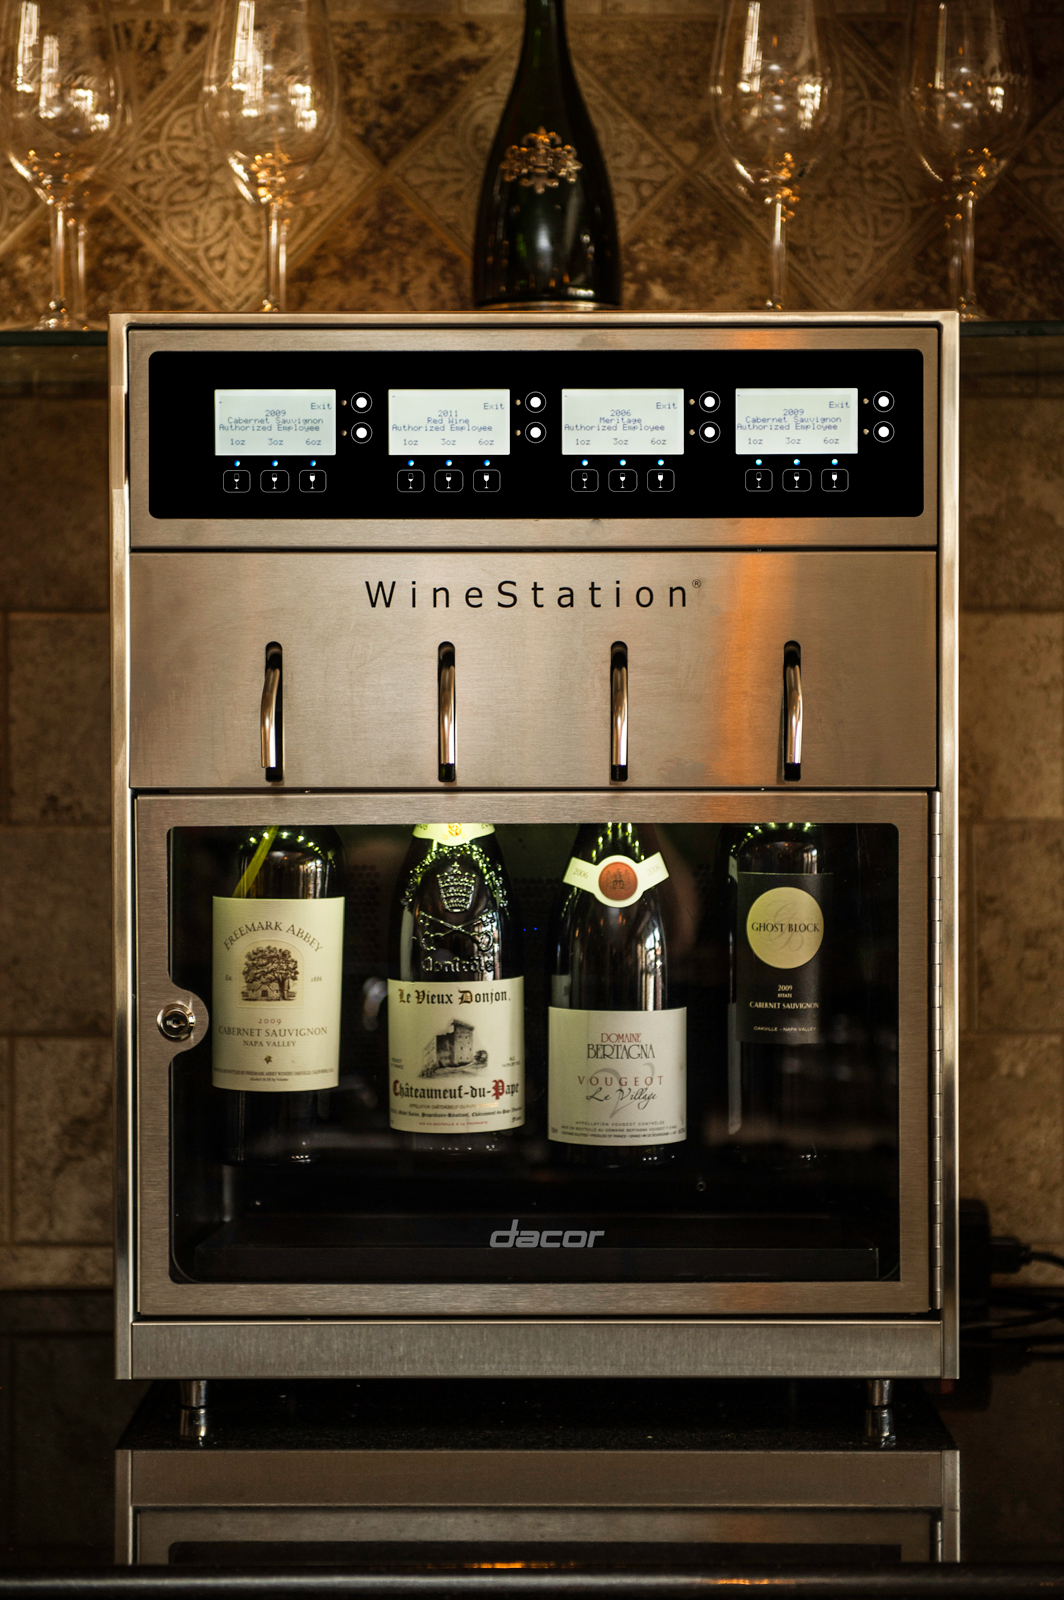 winestation